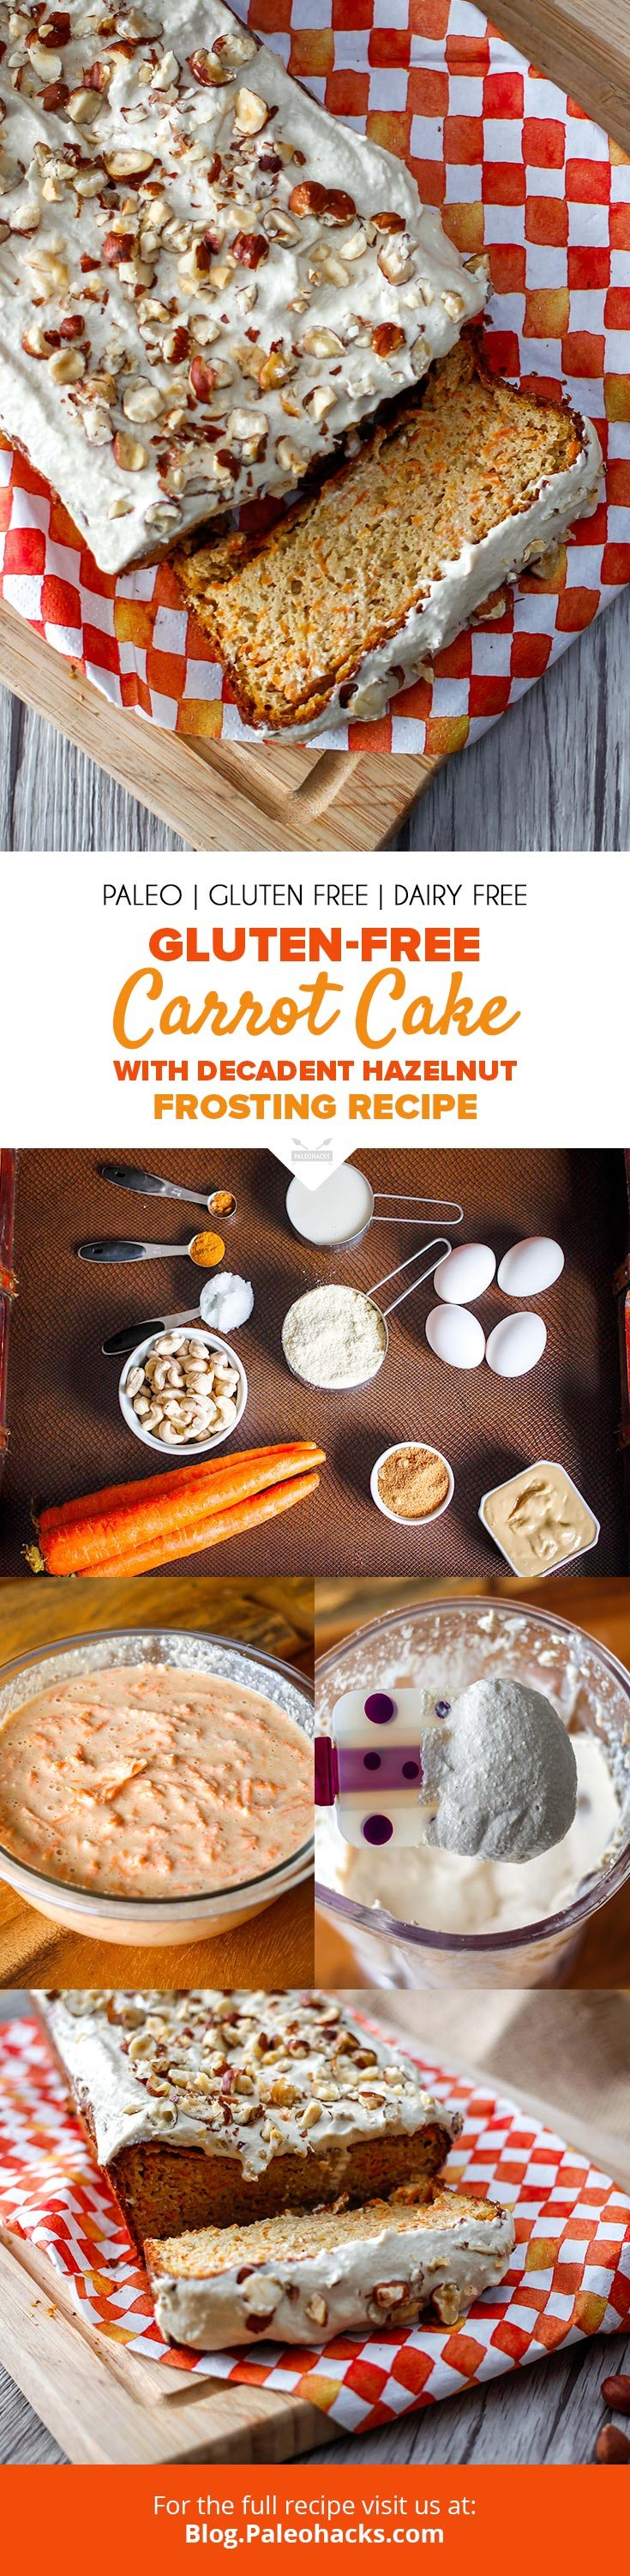 PIN-Gluten-Free-Carrot-Cake-with-Decadent-Hazelnut-Frosting-Recipe.jpg